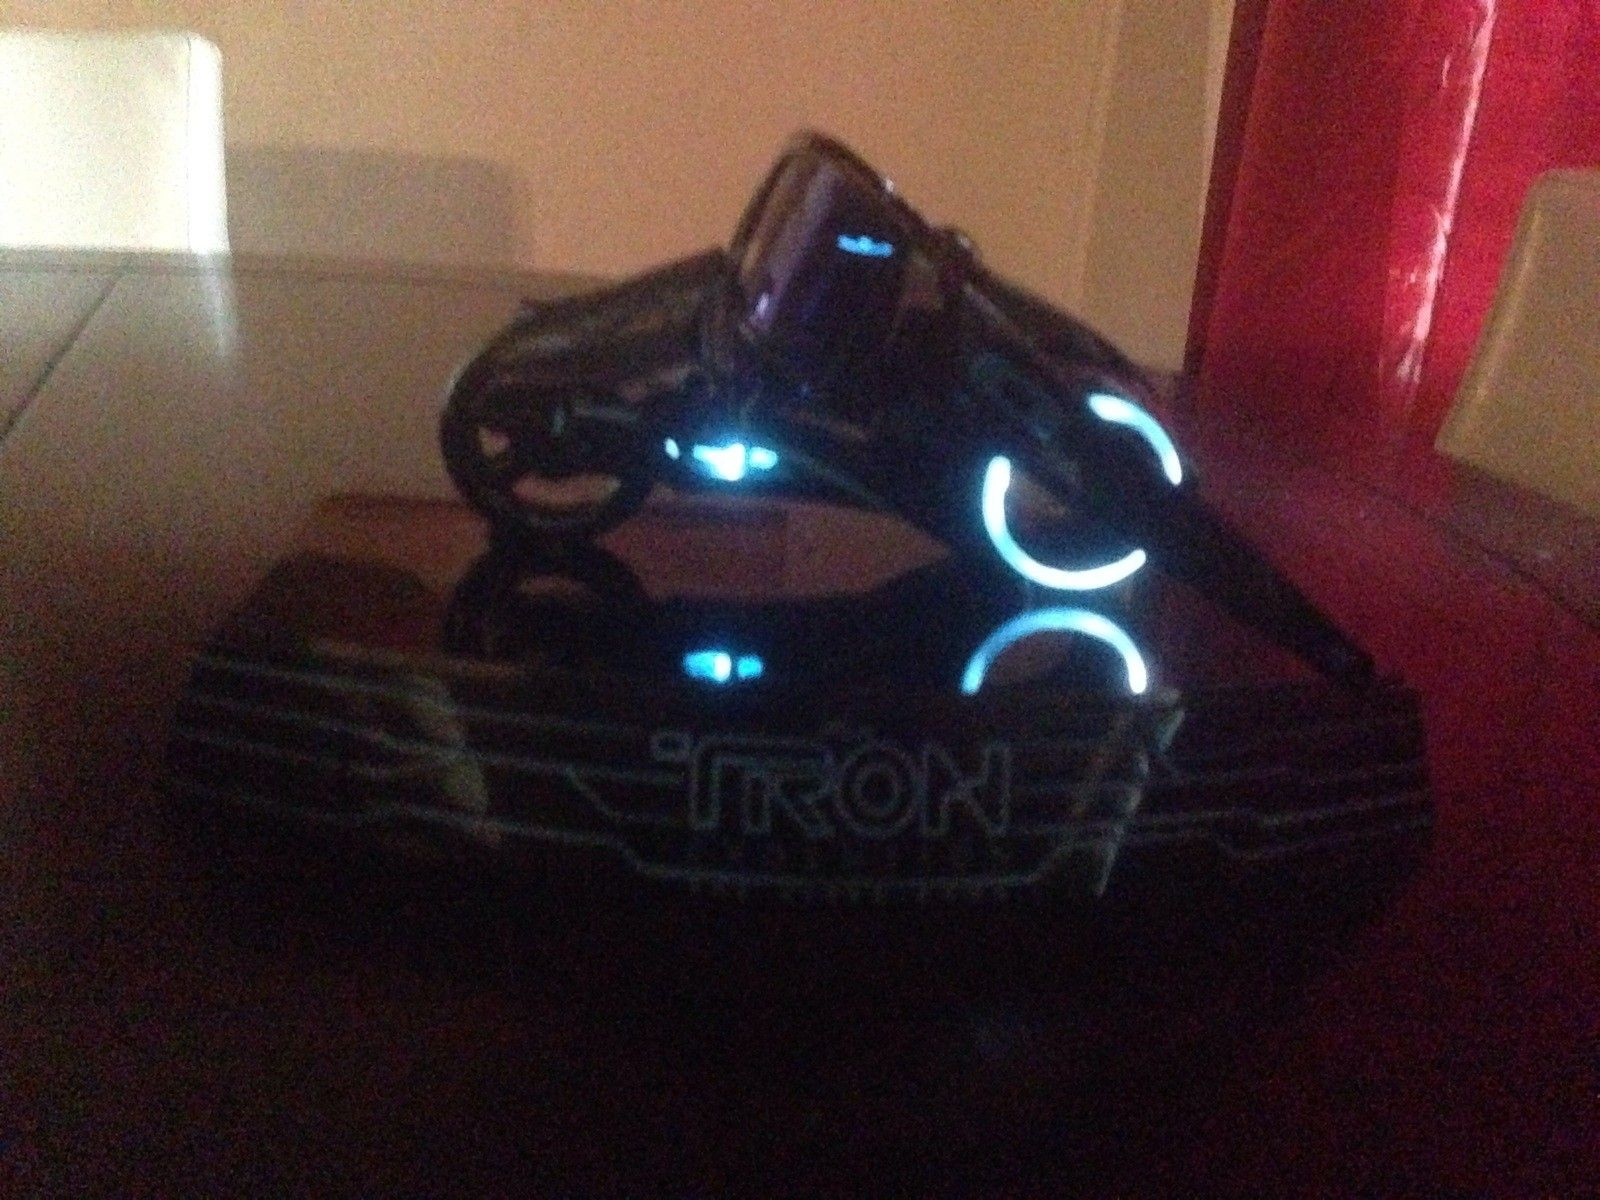 Tron set up - image.jpg